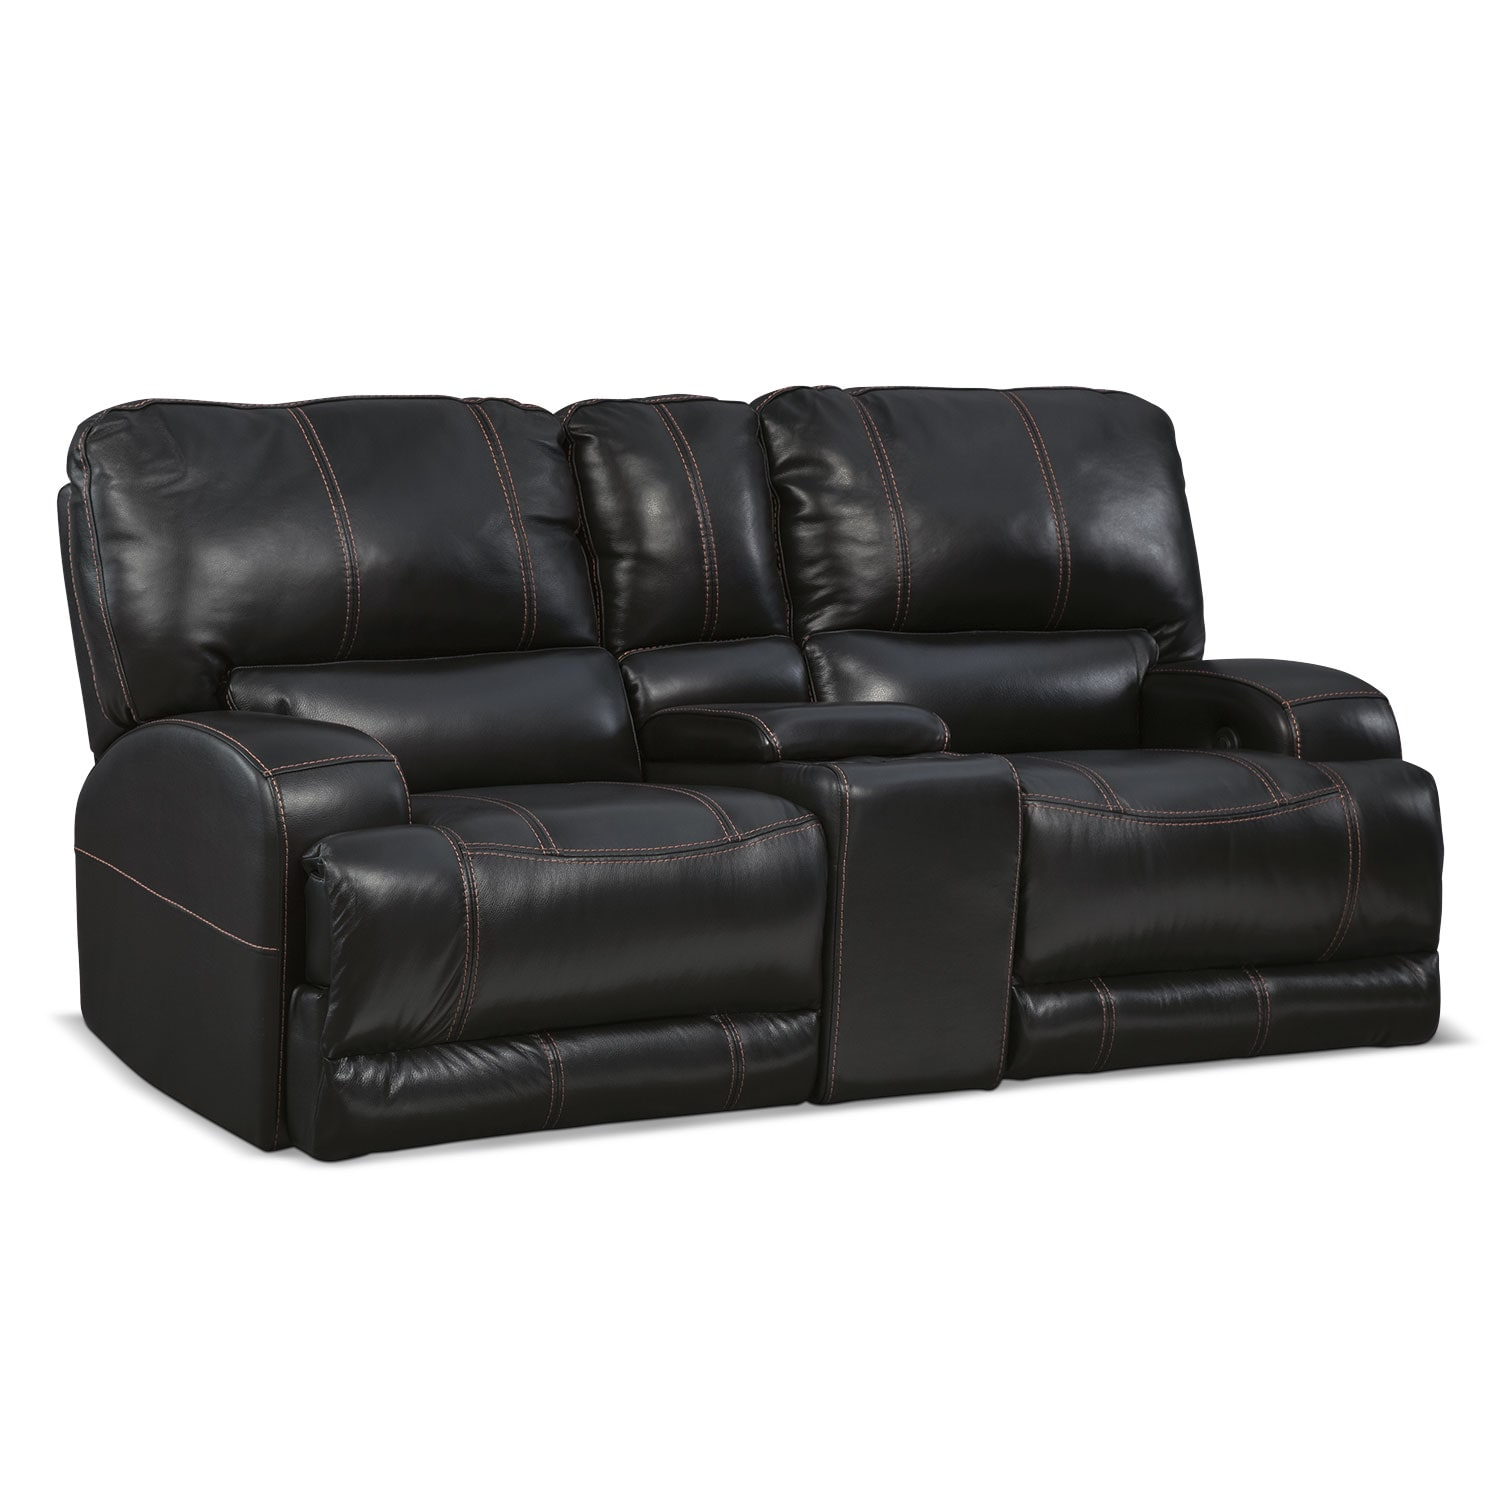 Living Room Furniture - Barton Black Power Reclining Loveseat w/ Console